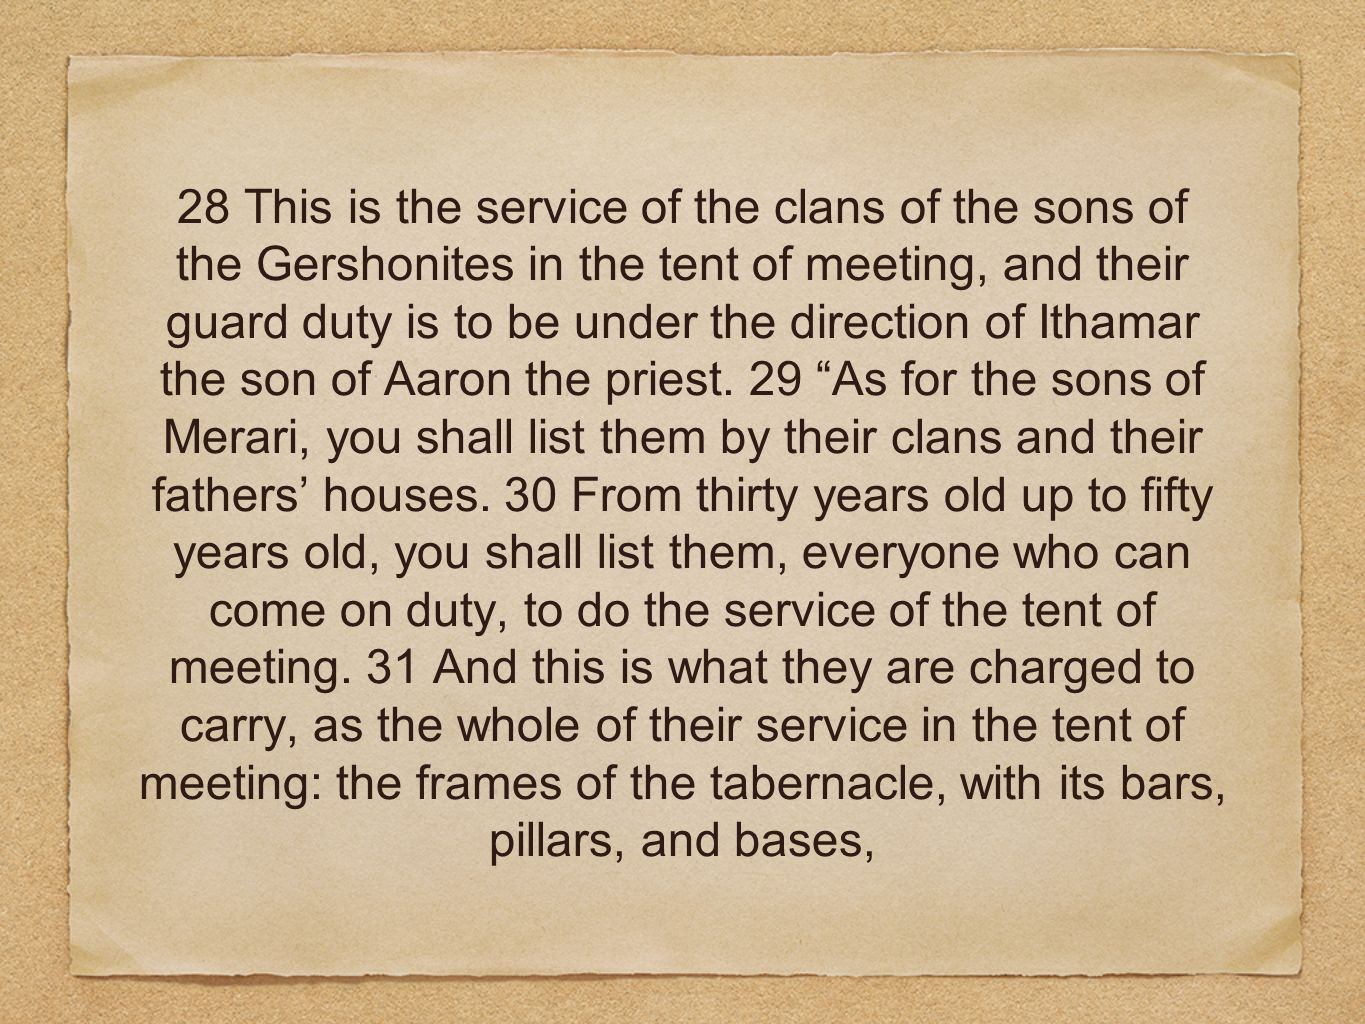 28 This is the service of the clans of the sons of the Gershonites in the tent of meeting, and their guard duty is to be under the direction of Ithamar the son of Aaron the priest.